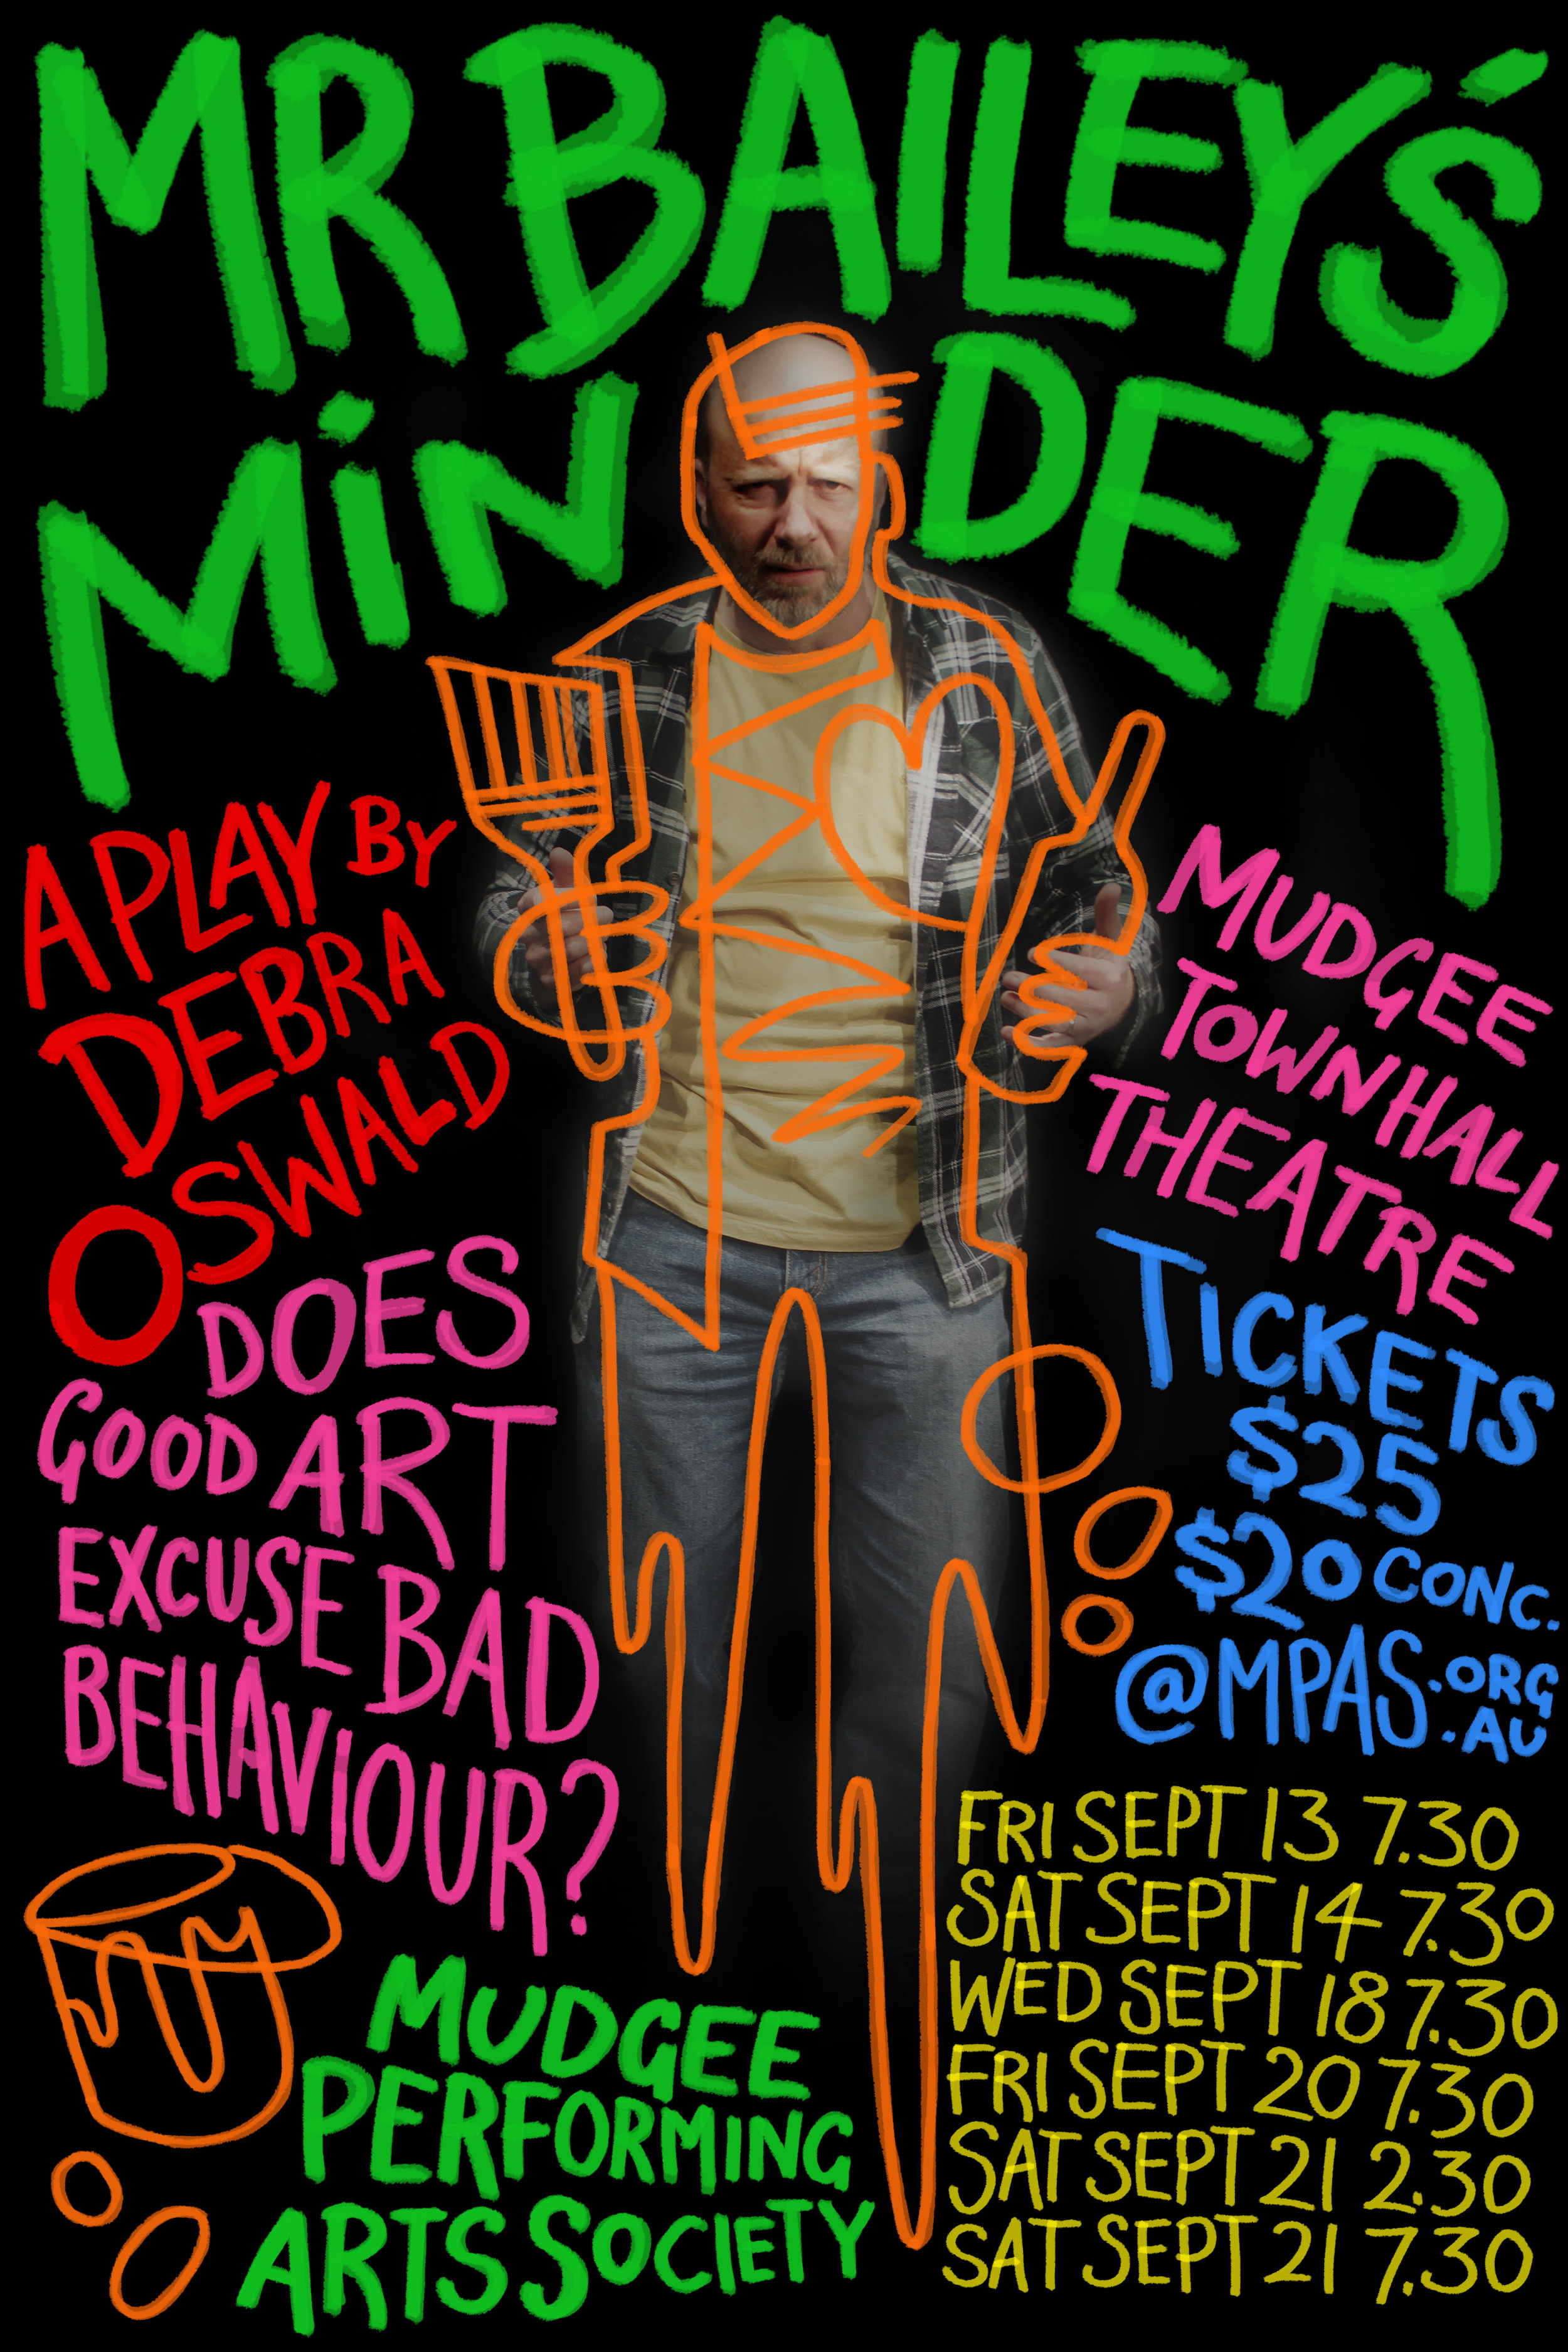 Mr Bailey's Minder - A play by Debra Oswald concerning the relationship that develops between burnt out artist, Leo Bailey and his minder, Therese.